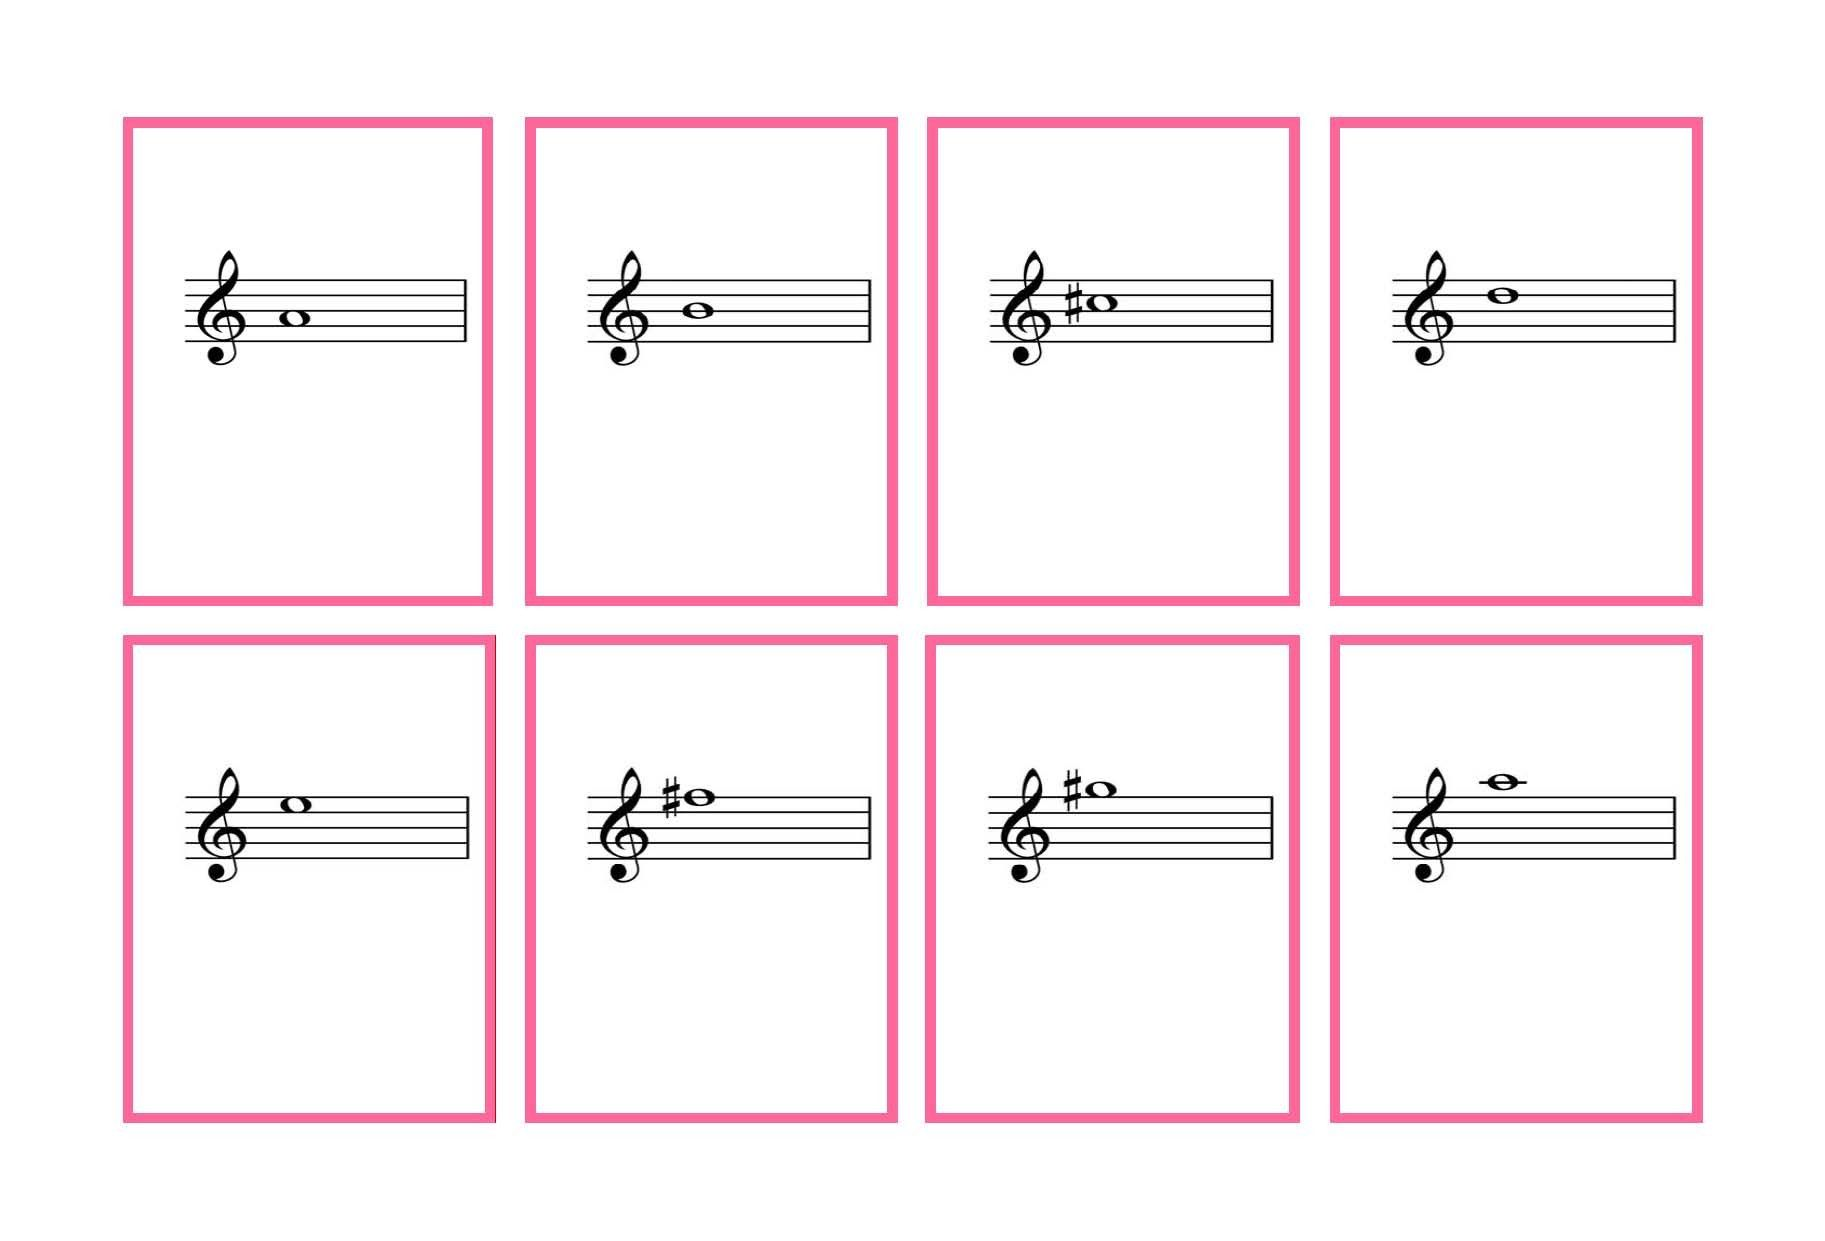 The Excellent Printable Blank Flashcards Carlynstudio With Free Printable Blank Flash Cards Templat Printable Flash Cards Flash Card Template Printable Cards